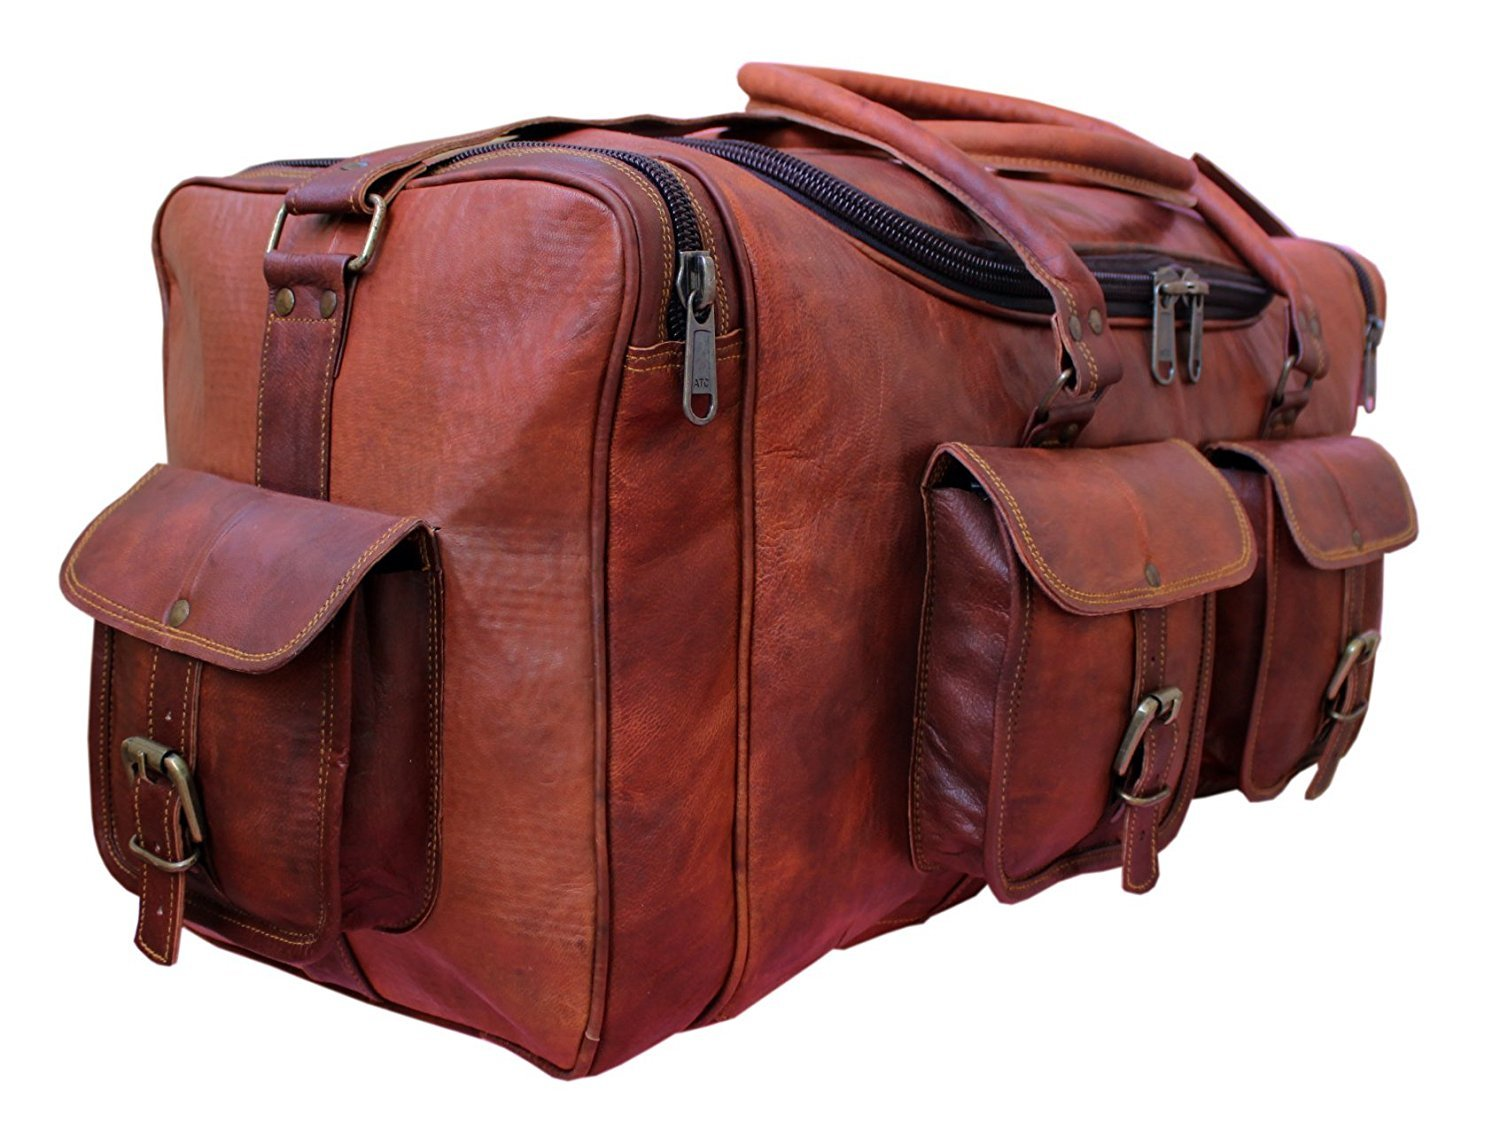 Vintage Leather 24'' Square Chain Duffel Travel Gym Sports Overnight Weekend Leather Bag by handolederco.